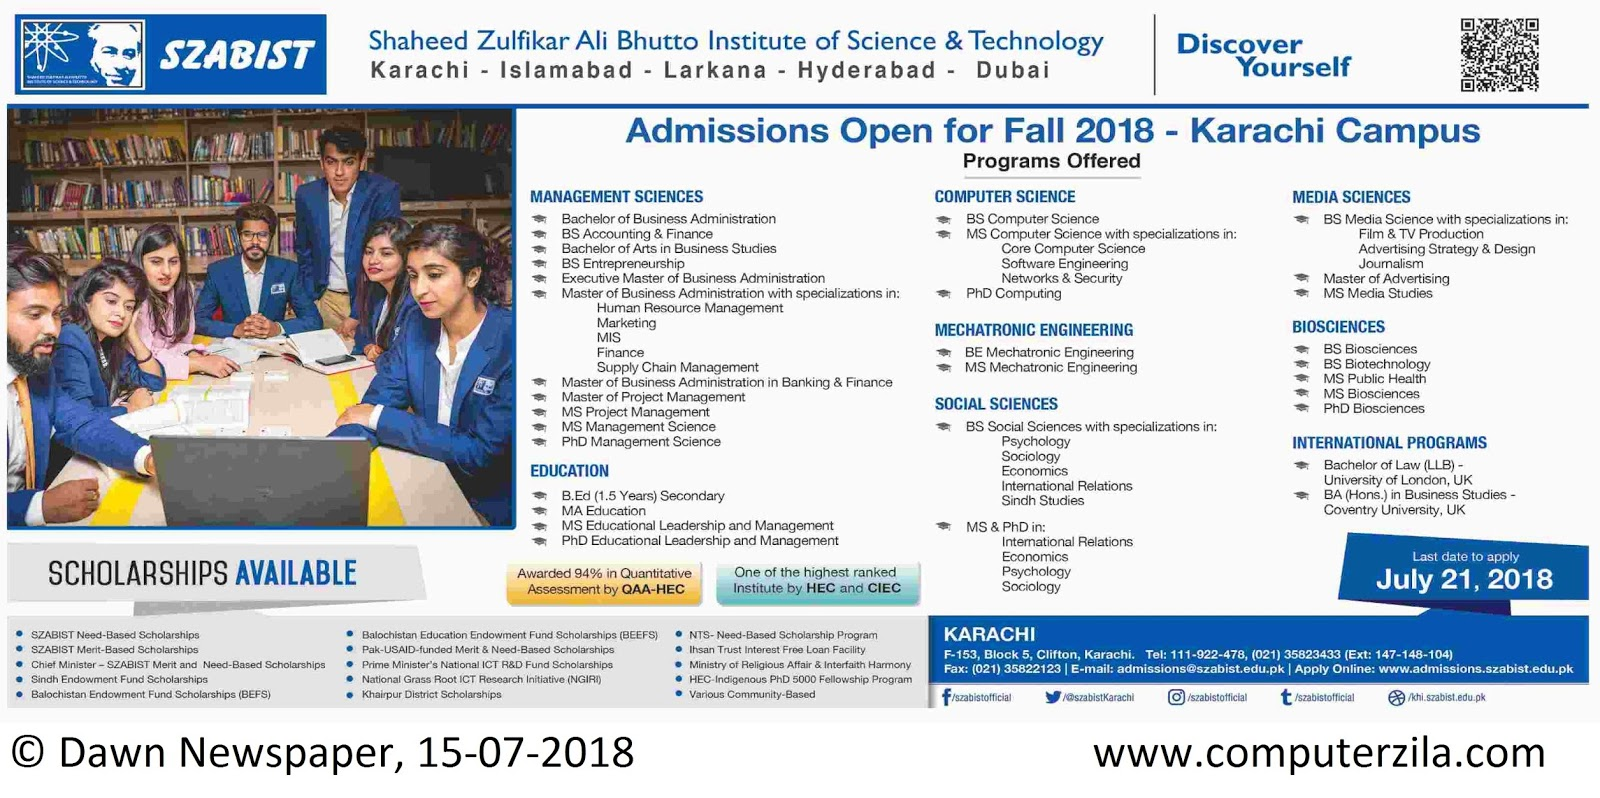 Shaheed Zulfikar Ali Bhutto Institute of Science & Technology Admissions Fall 2018